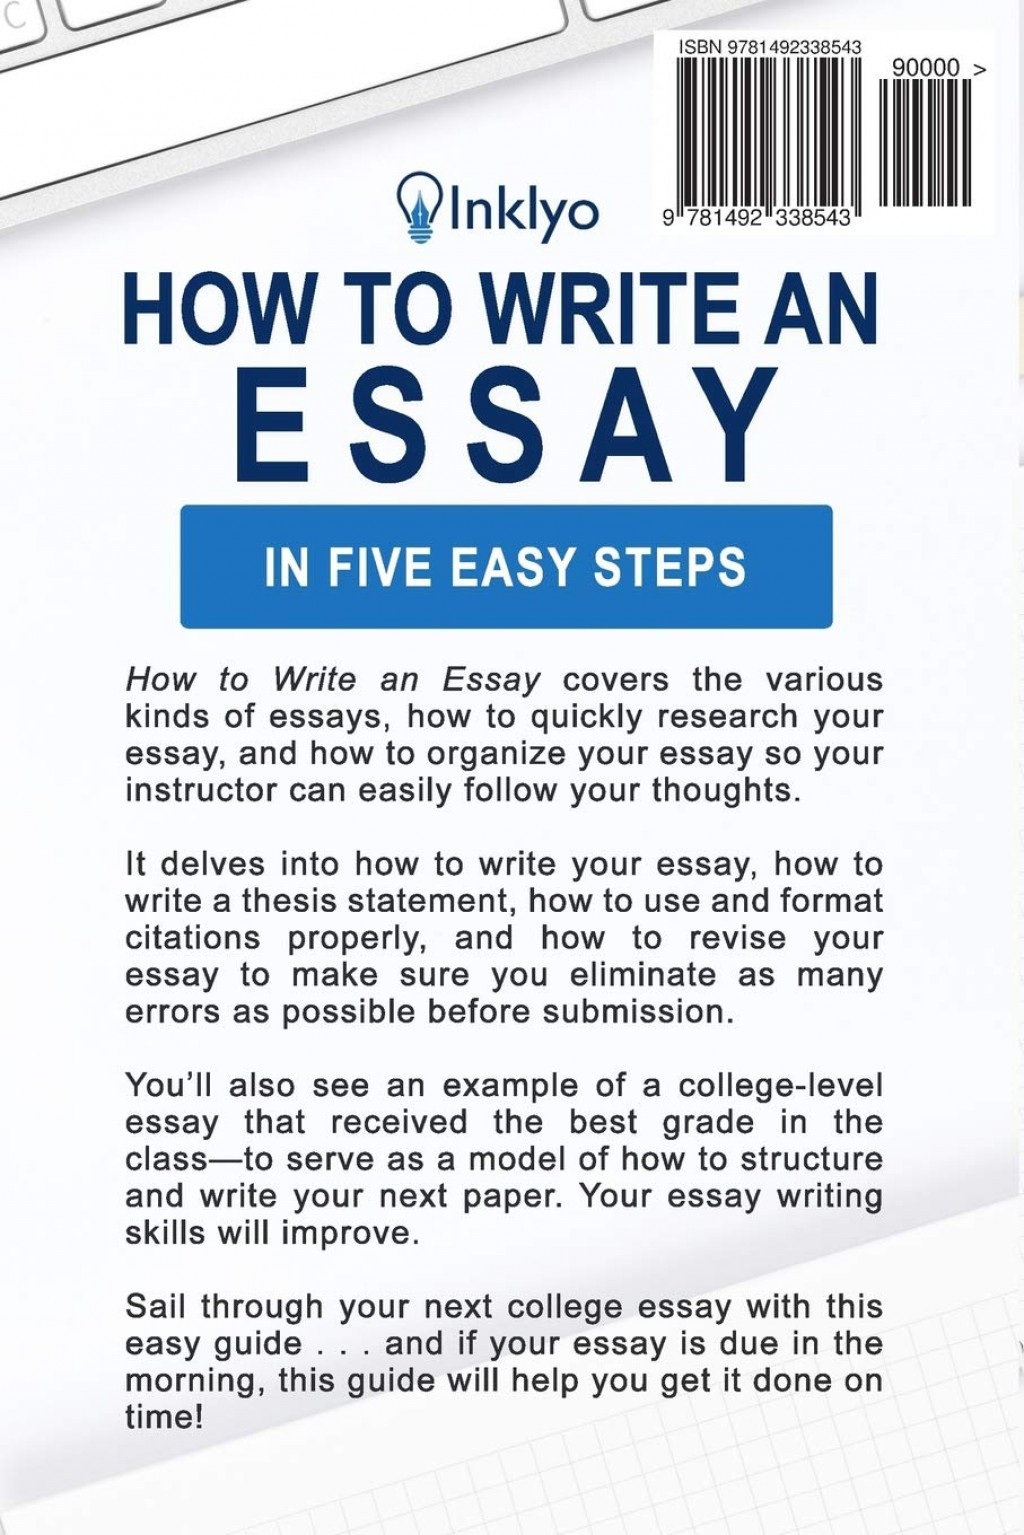 003 How To Write Essay Example Archaicawful A In College Level Business Narrative Outline Large